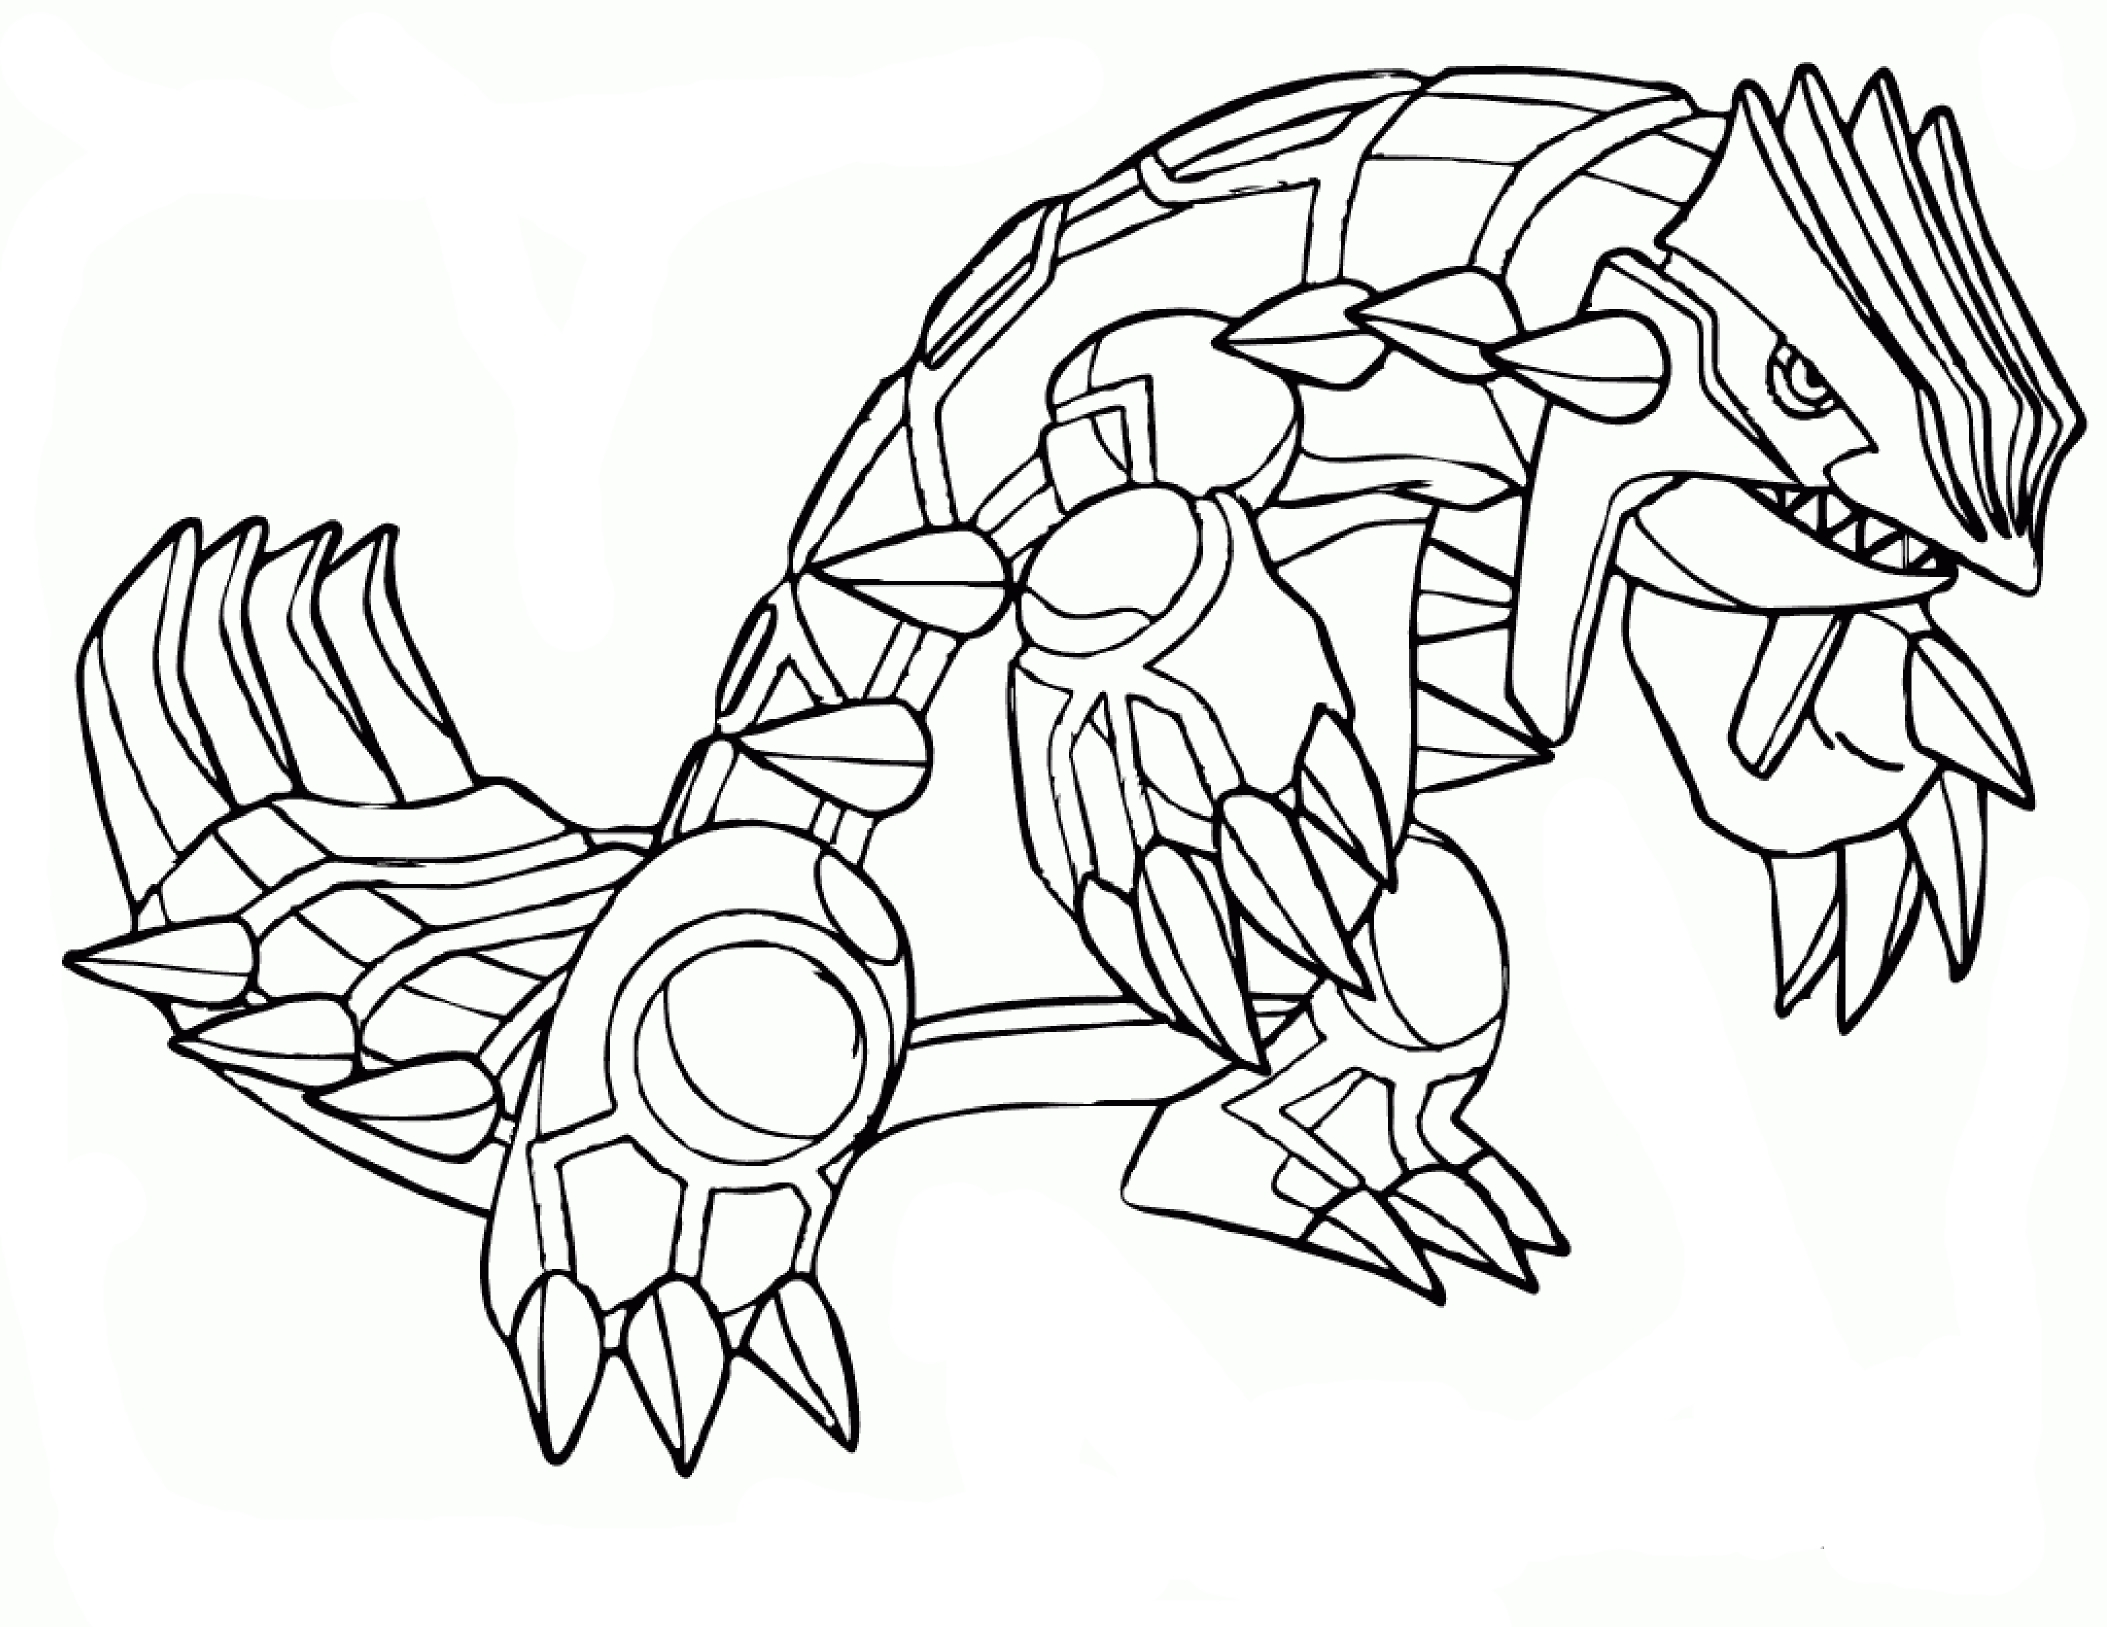 Groudon Coloriage Groudon Pokemon à Imprimer Et Colorier